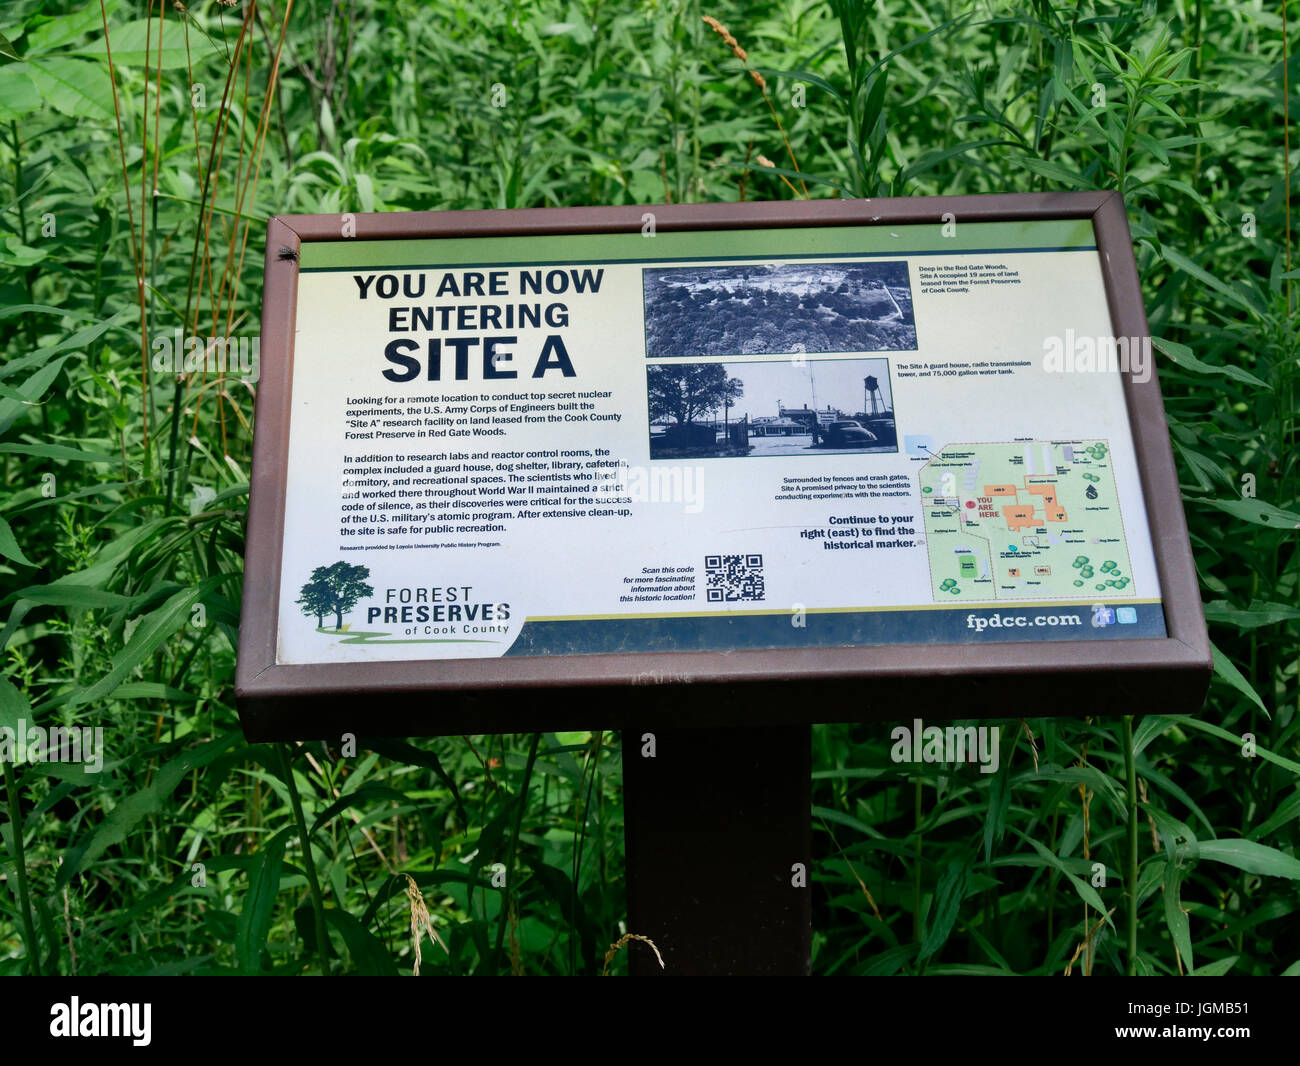 Interpretive sign at Site A, former Manhatten Project research facility, Red Gate Woods, Palos Park, Illinois. - Stock Image